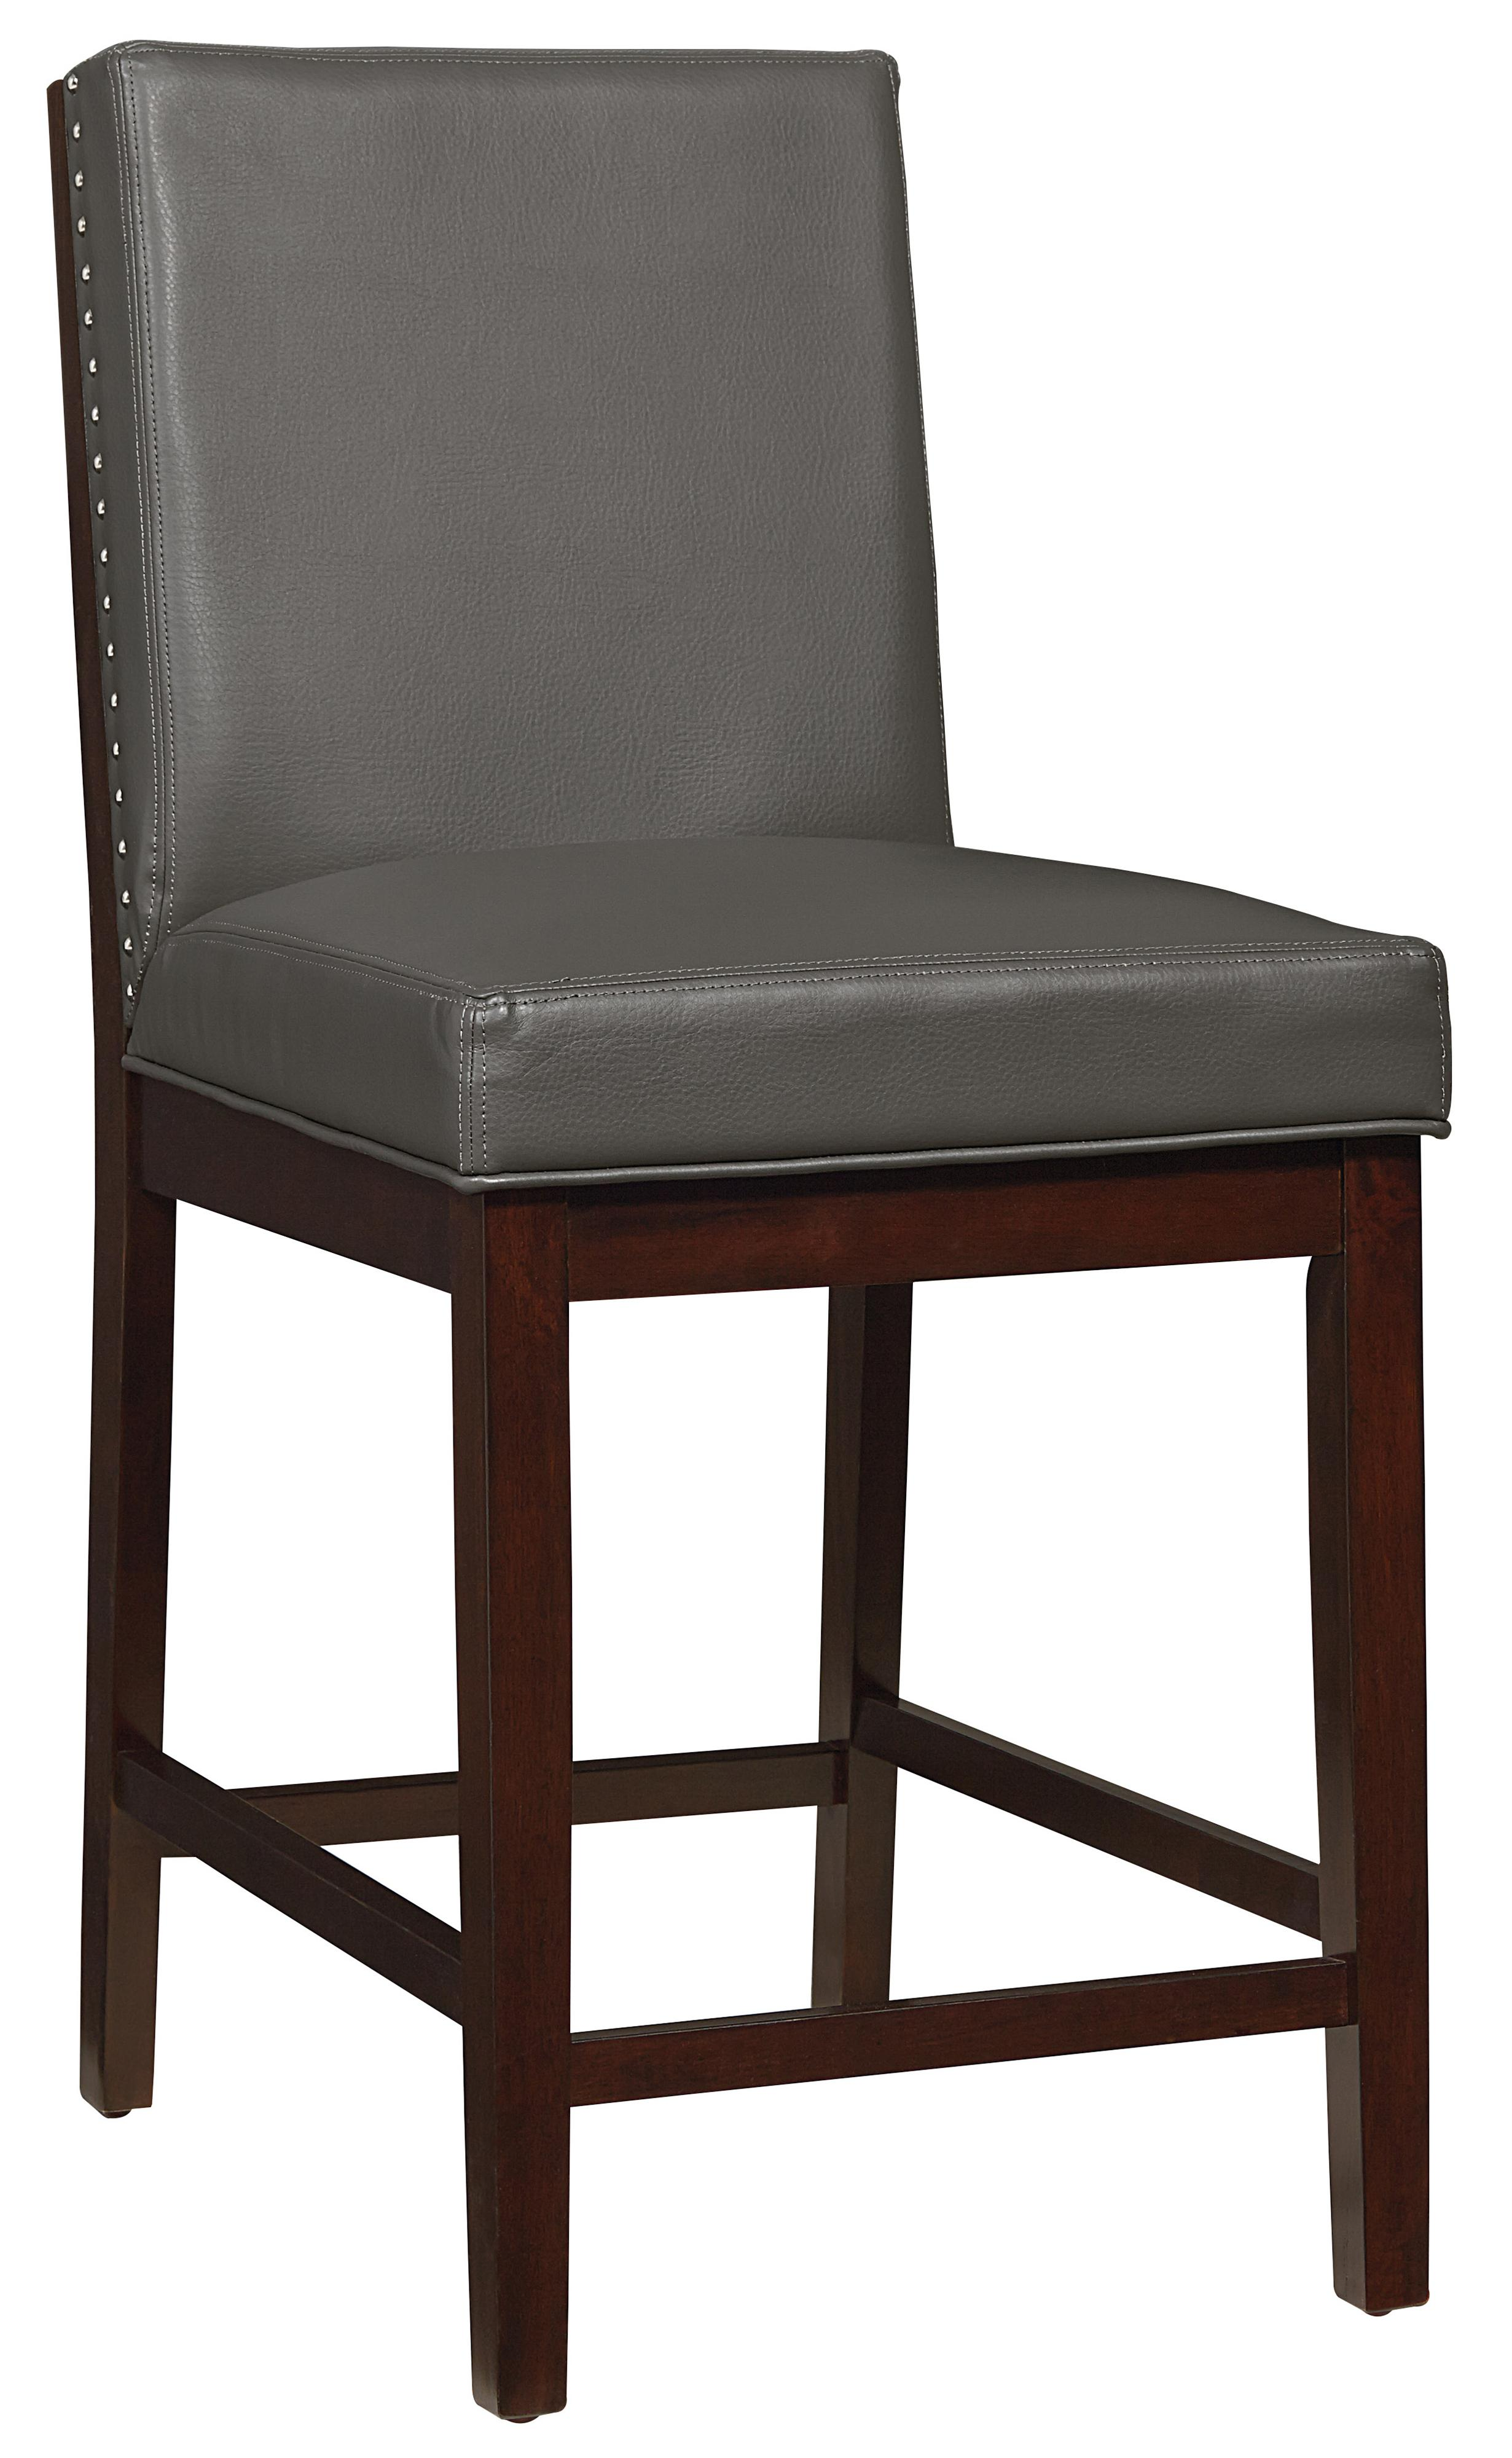 Standard Furniture Couture Elegance Counter Height Chair - Item Number: 10575